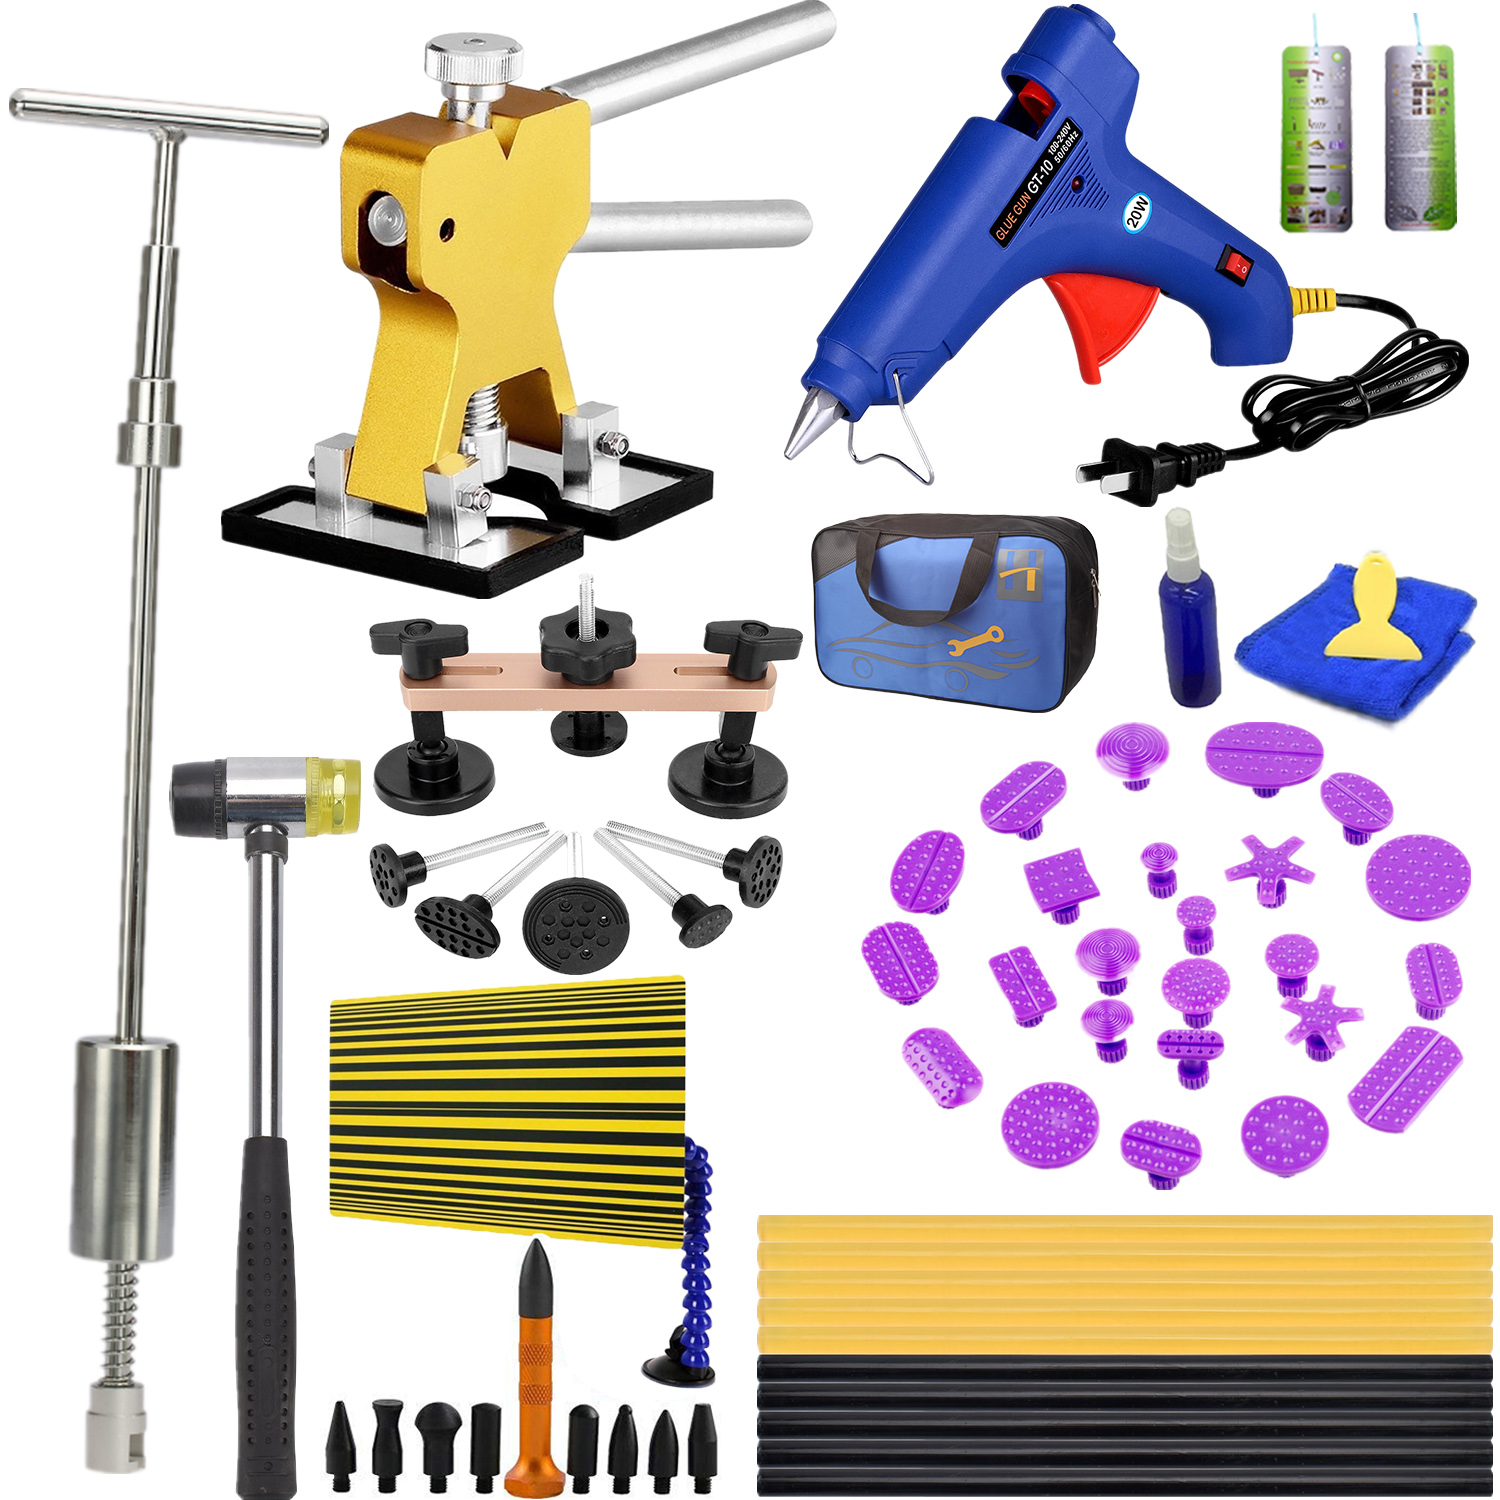 Paintless Dent Repair Tools Dent Puller Kits Pops a Car Dent Removal Kit, Slide Hammer & Glue Gun for Automobile Body Motorcycle Refrigerator Washer